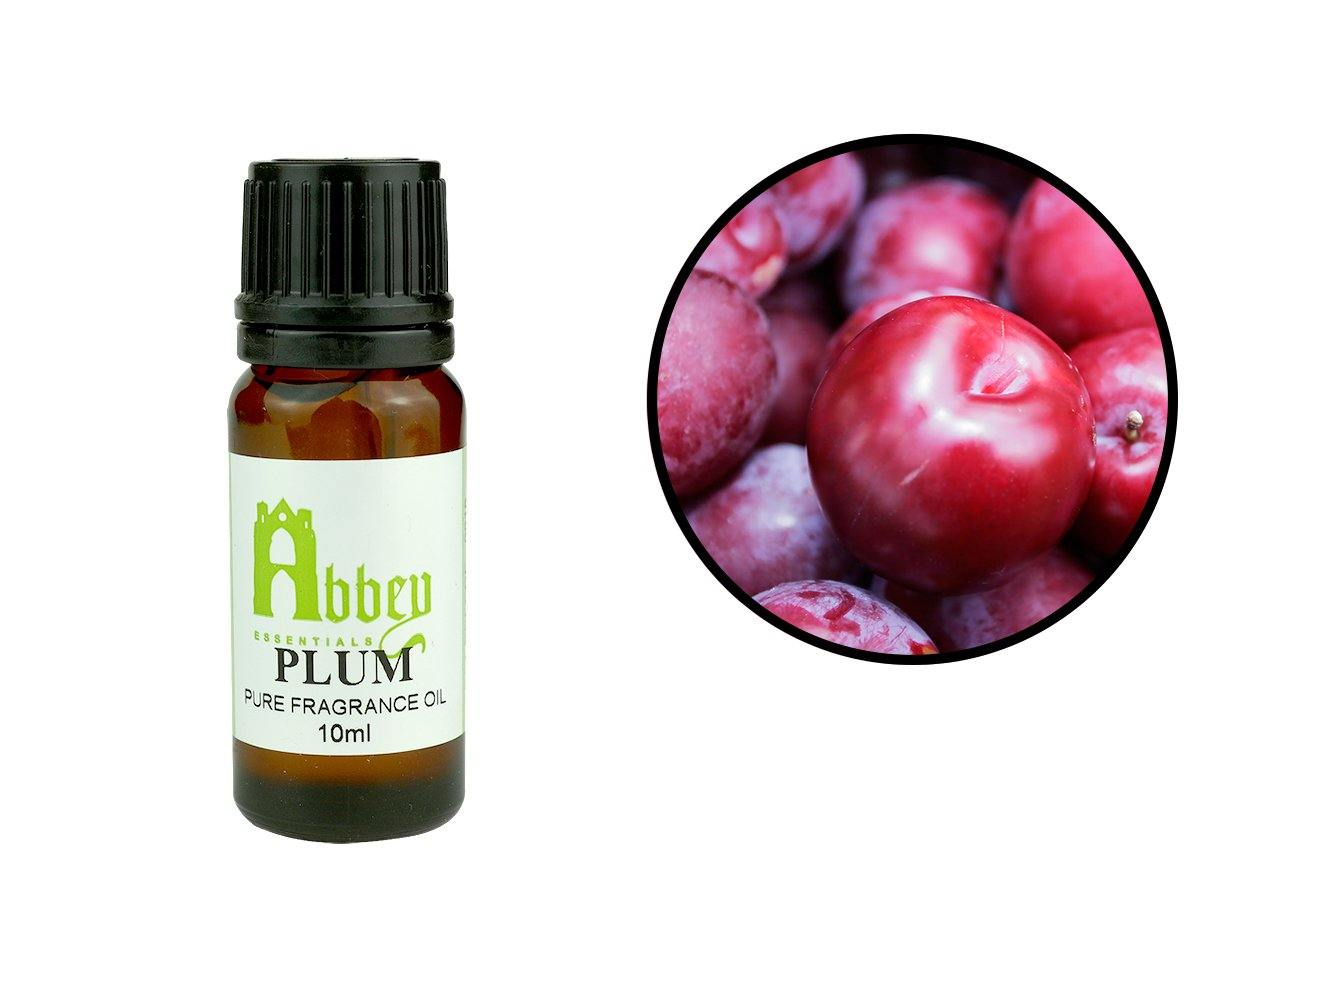 Plum Fragrance 10ml